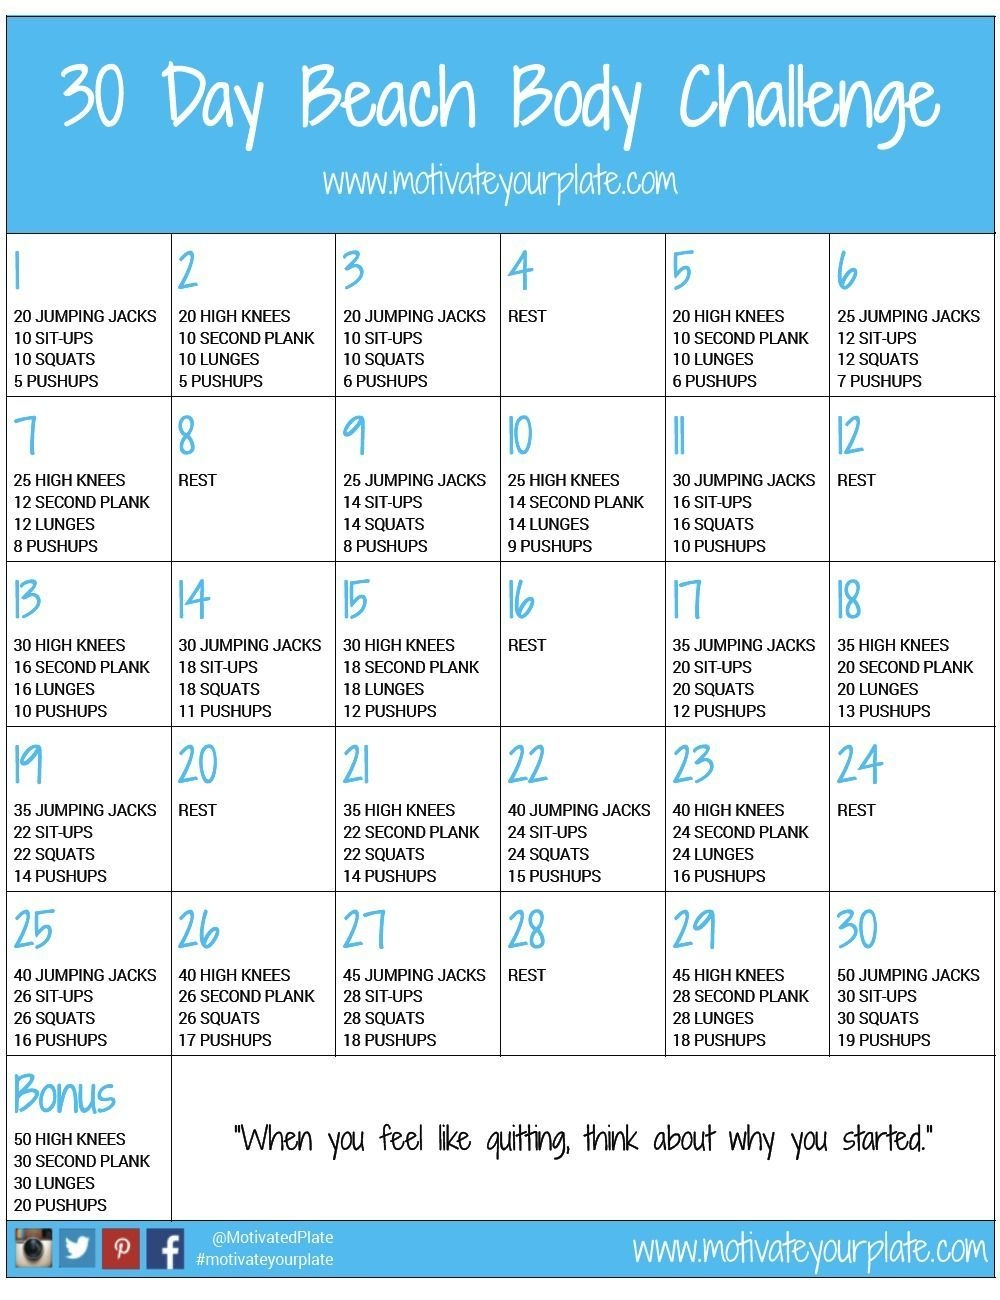 30 Day Printable Workout Schedule   30 Day Beach Body